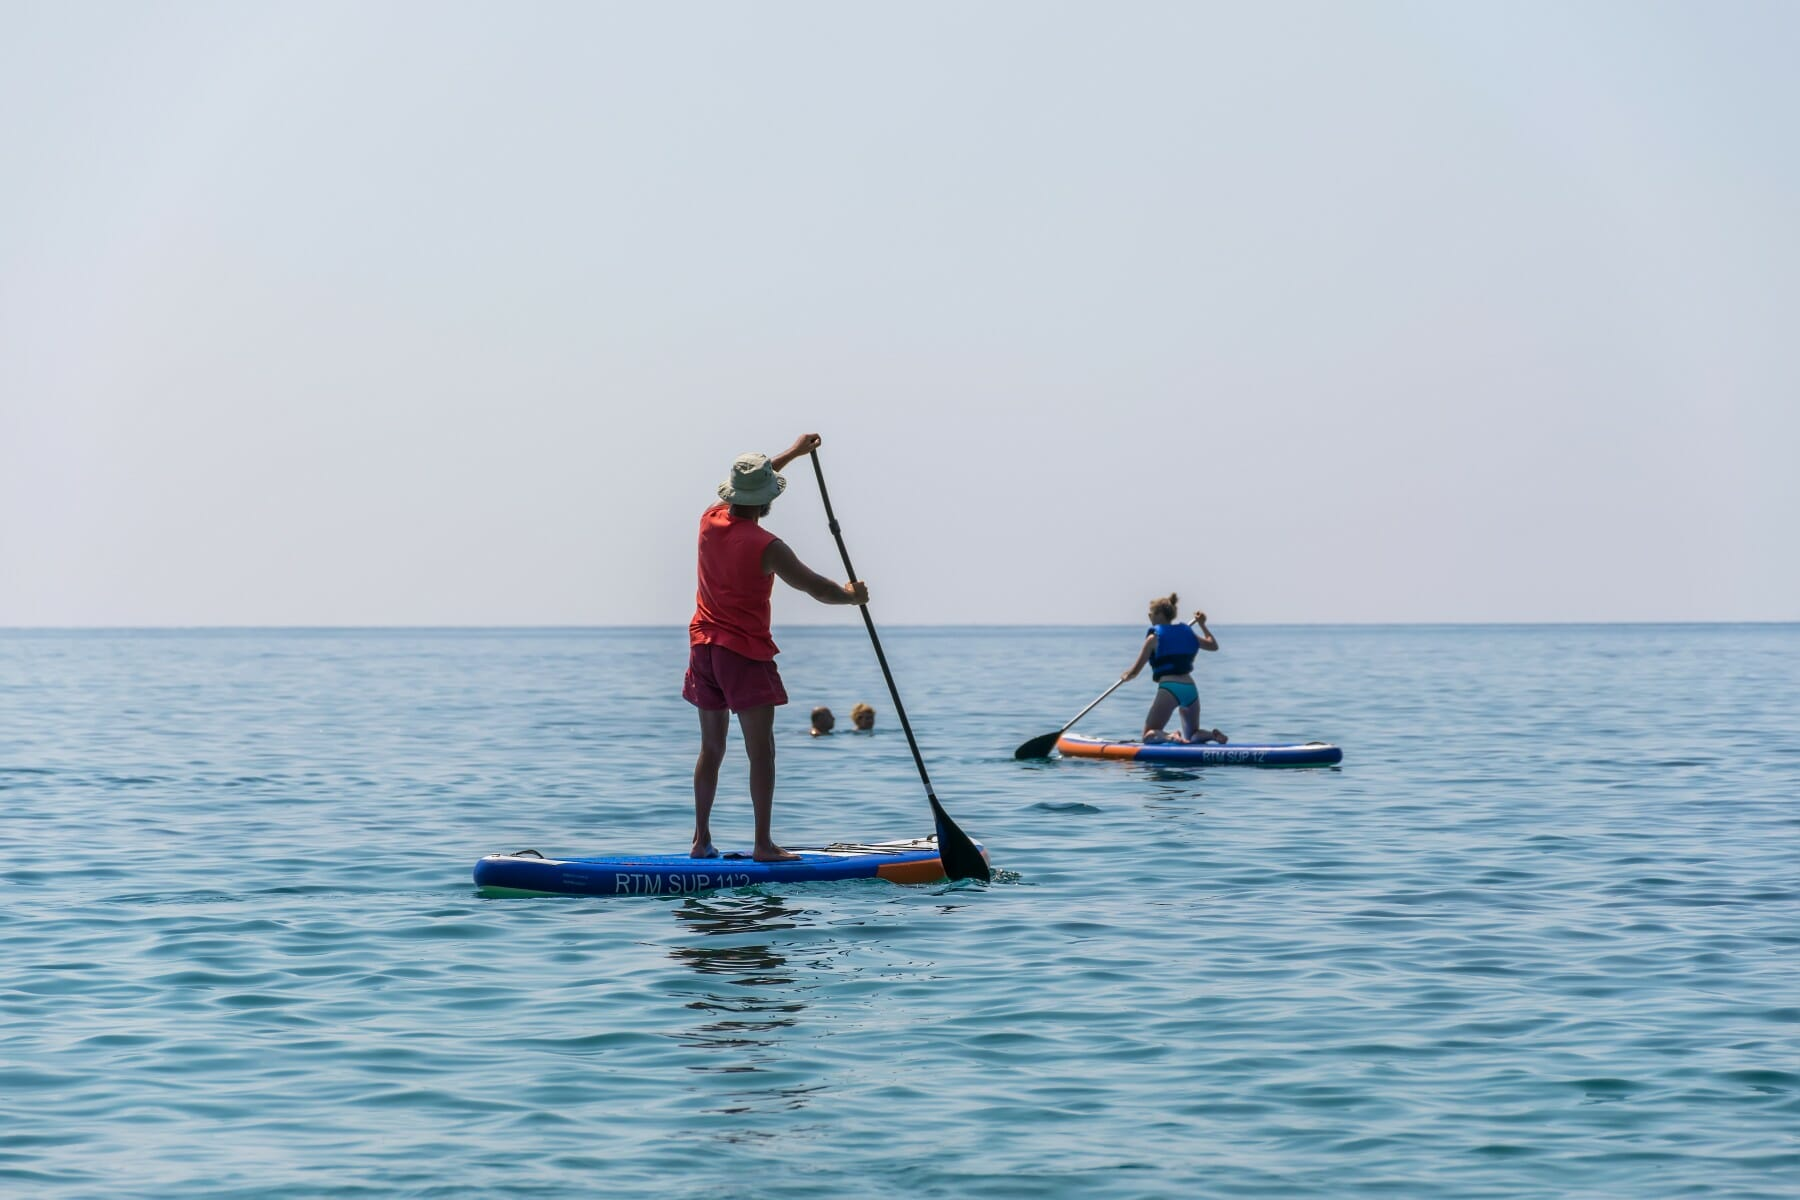 Tourists are engaged in rowing on the board (sup) on the surface of the calm sea 2